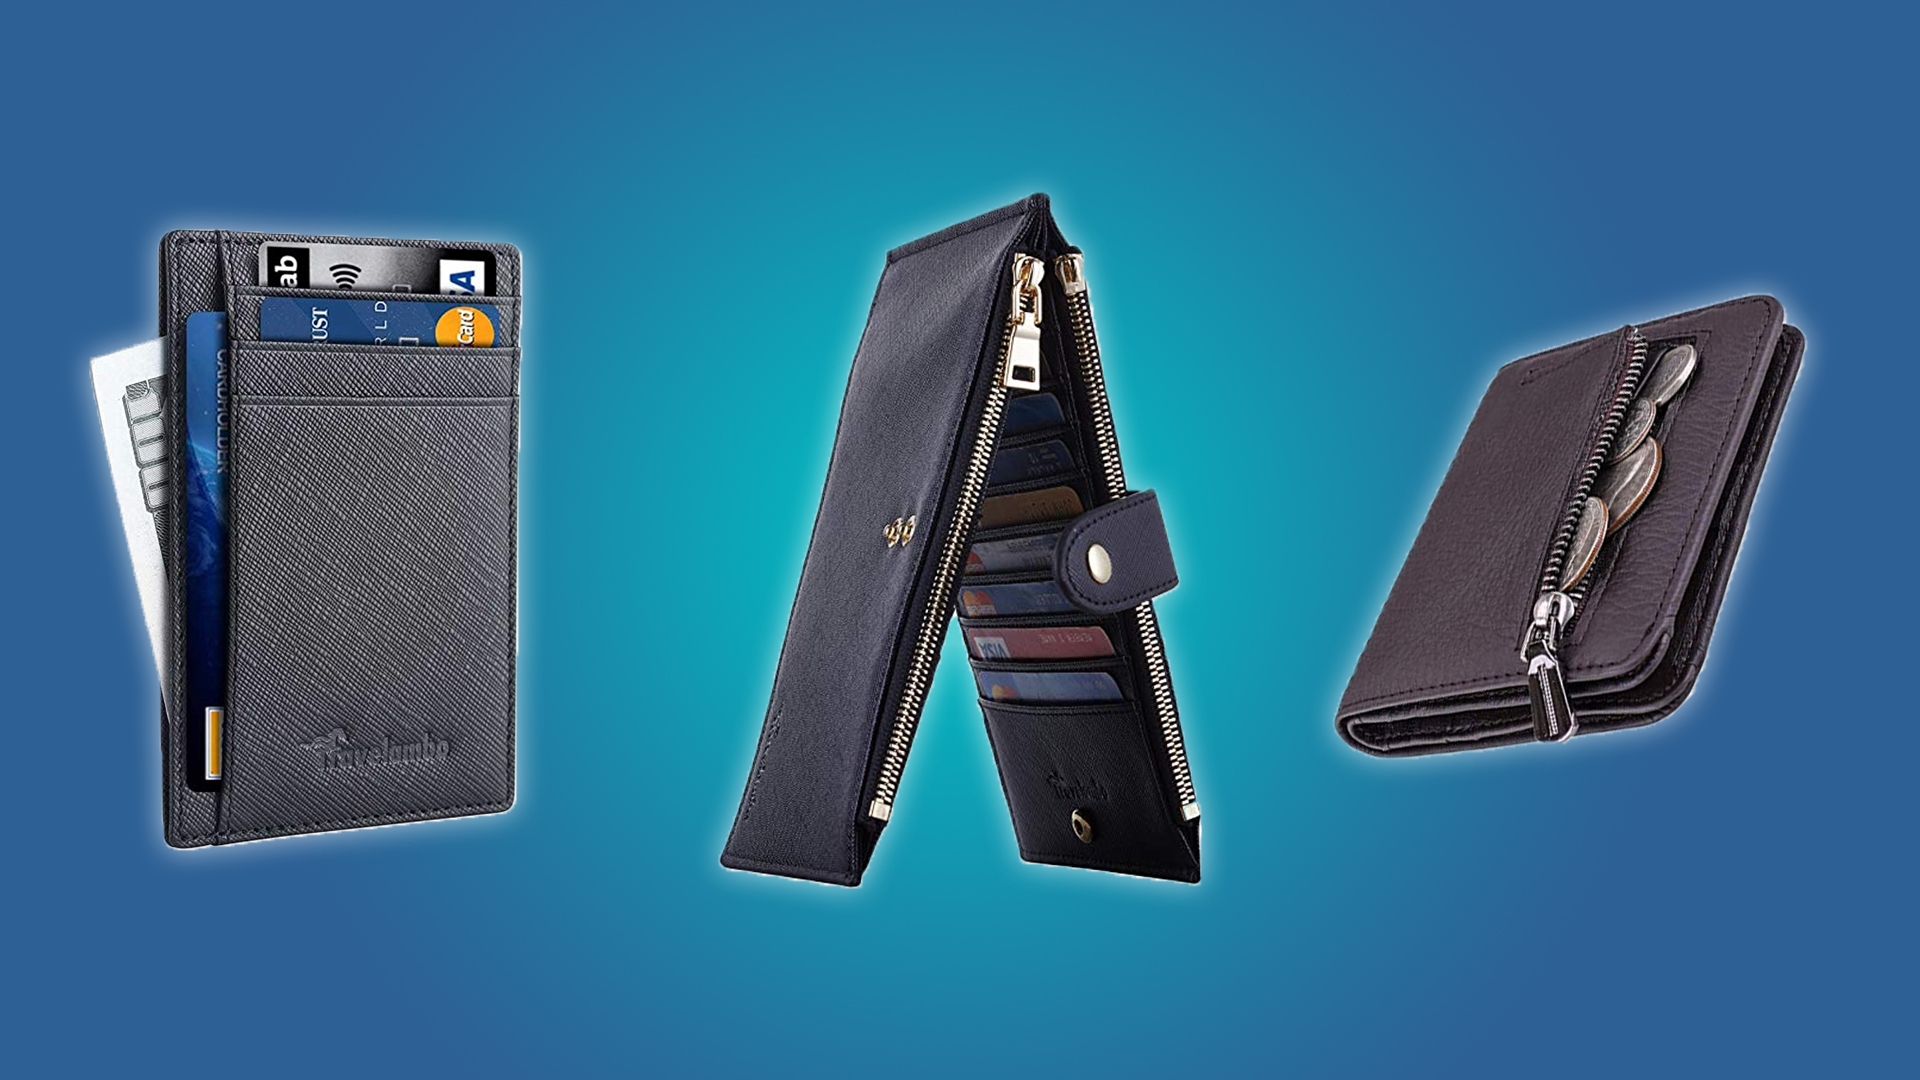 The Itslife coin purse, the Travelambo zipper wallet, and the Travelambo slim wallet